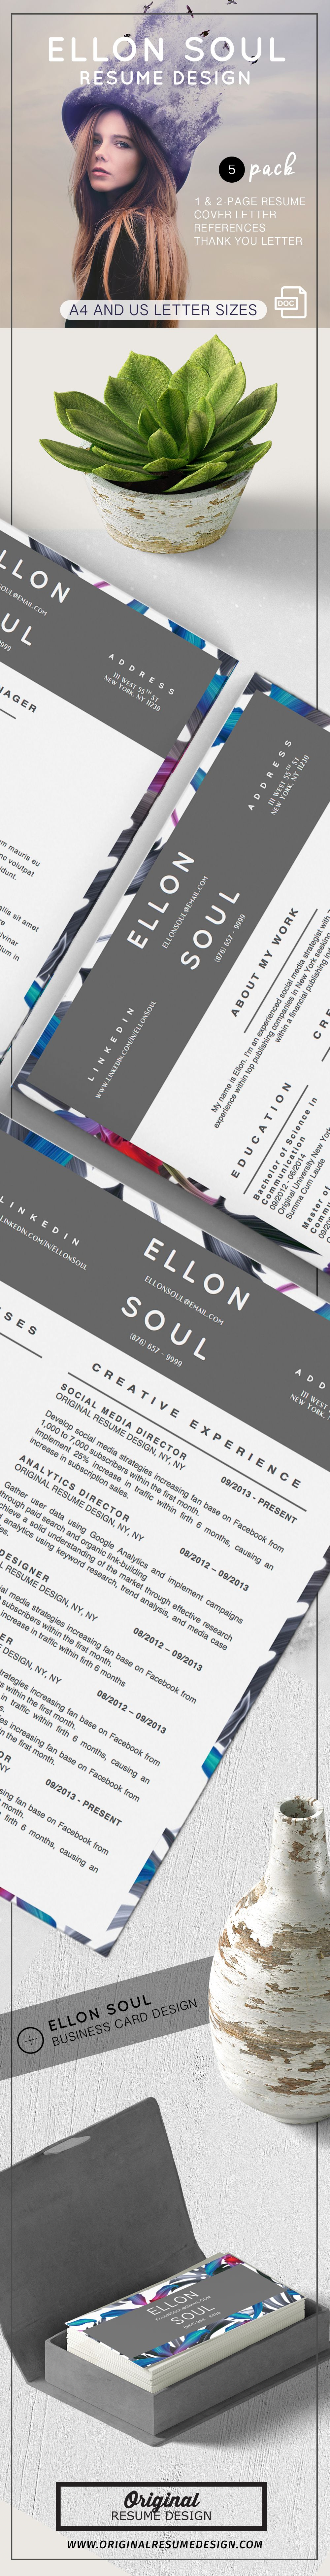 Beautiful And Modern Resume Design Ellon Soul Features